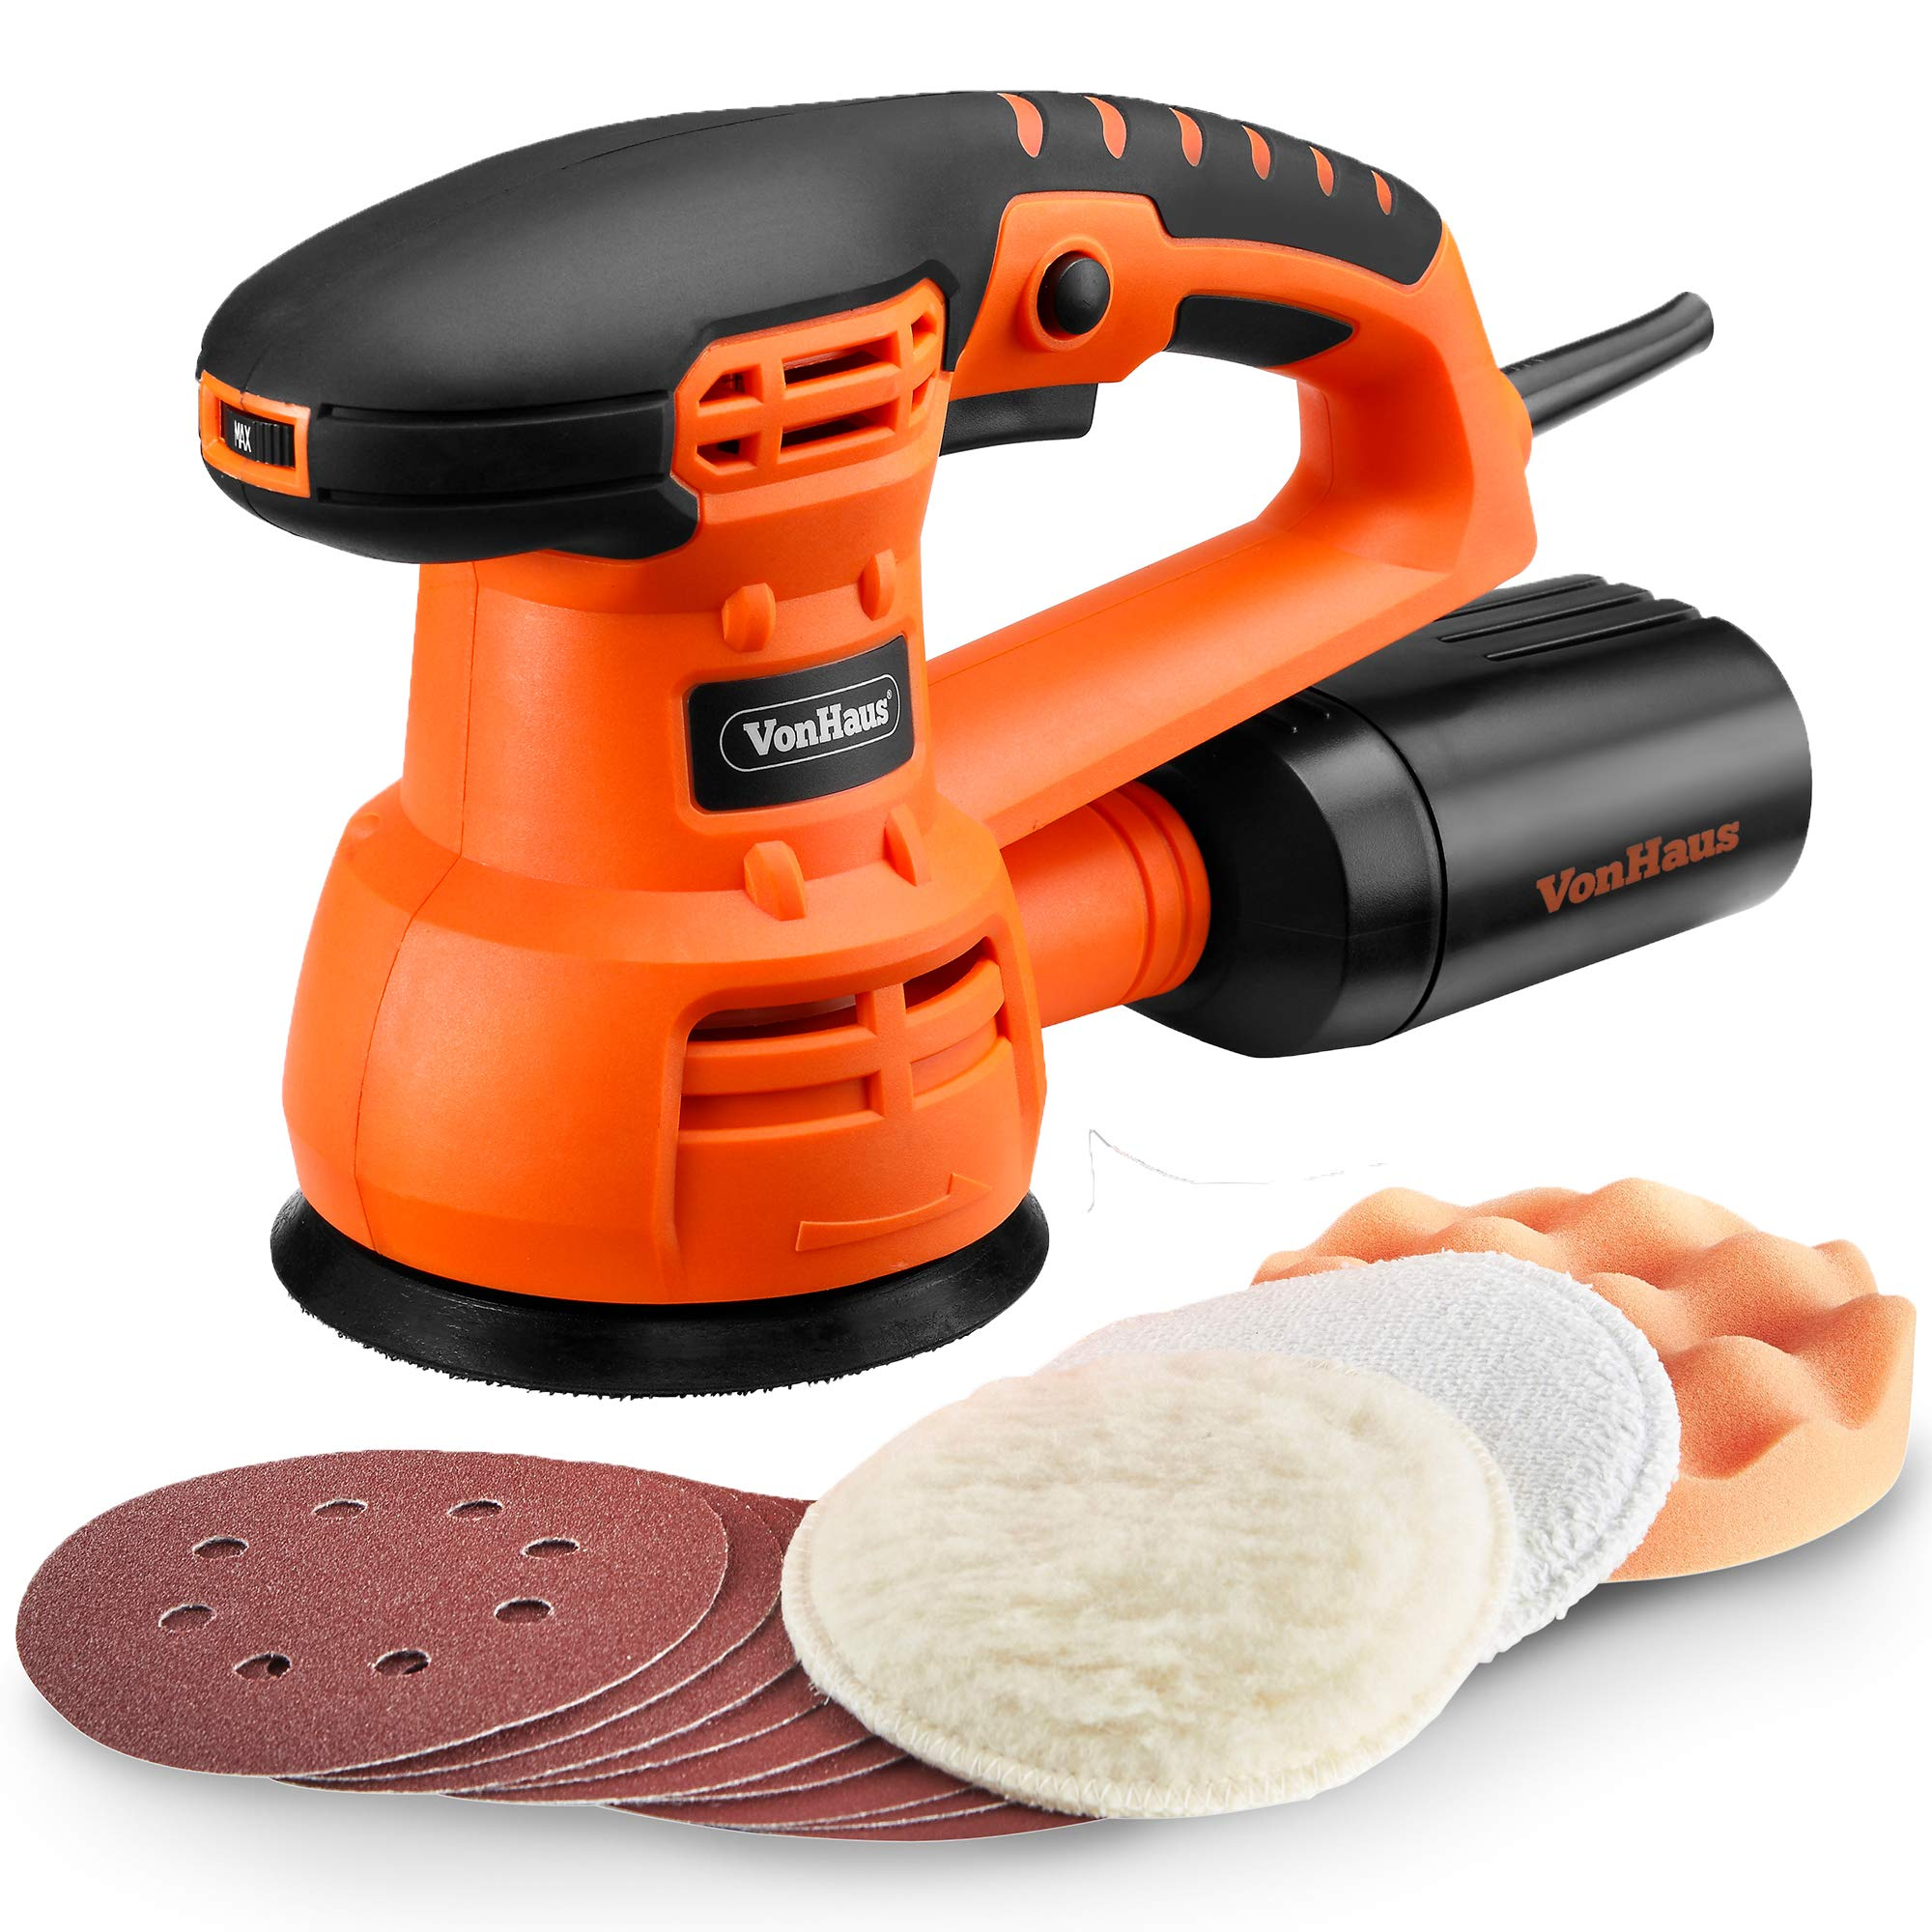 VonHaus 5'' Random Orbit Sander Polisher with Variable Speed, 13000 RPM, 9 Sanding Pads, 3 Polishing Pads and Dust Extractor System by VonHaus (Image #1)